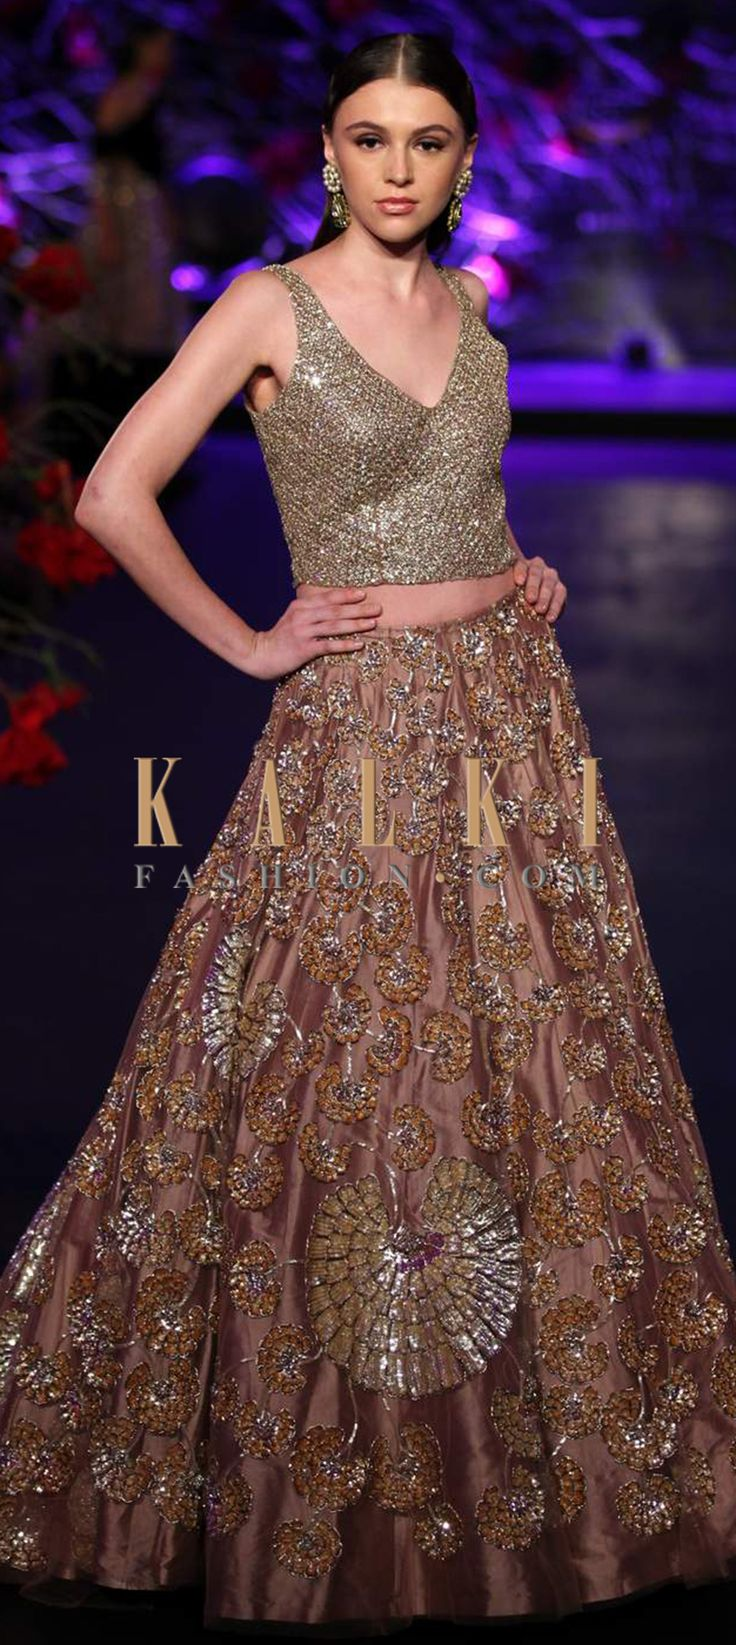 Click on the following link - http://www.kalkifashion.com/designers/manish-malhotra.html